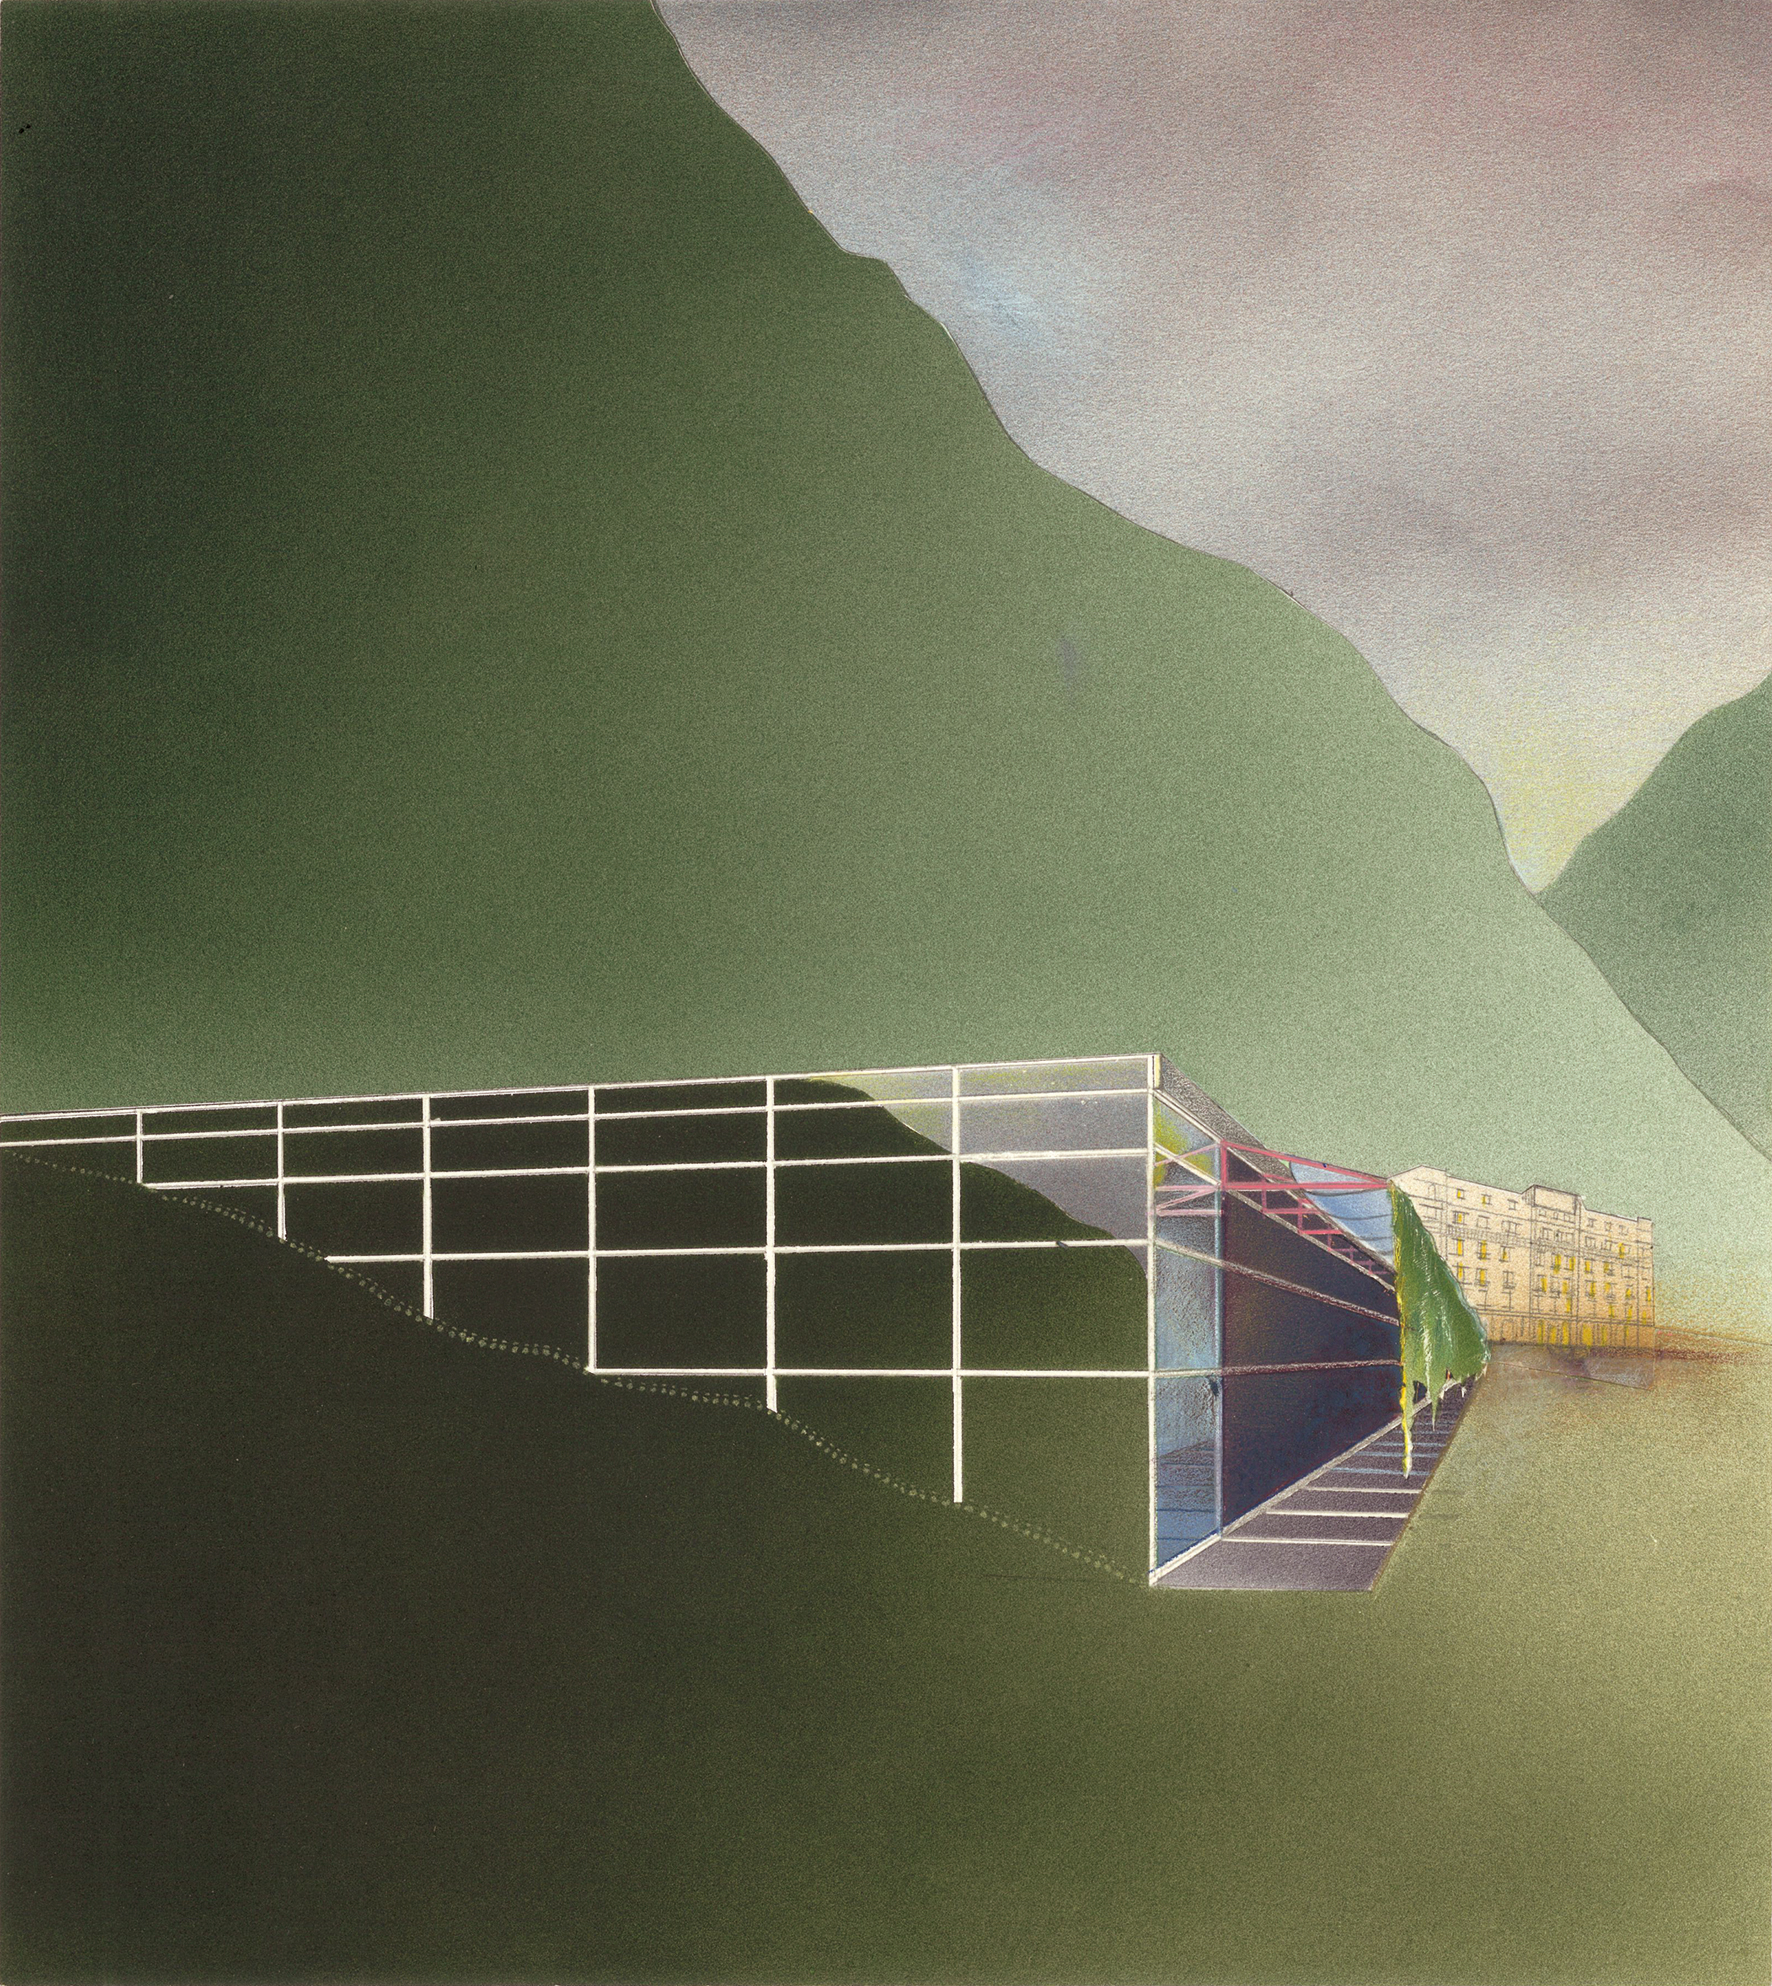 Station thermale, La Léchère (Savoie) No.126 , 1986 Airbrush painting, pencil and collage on paper 30.3 x 27.2 cm